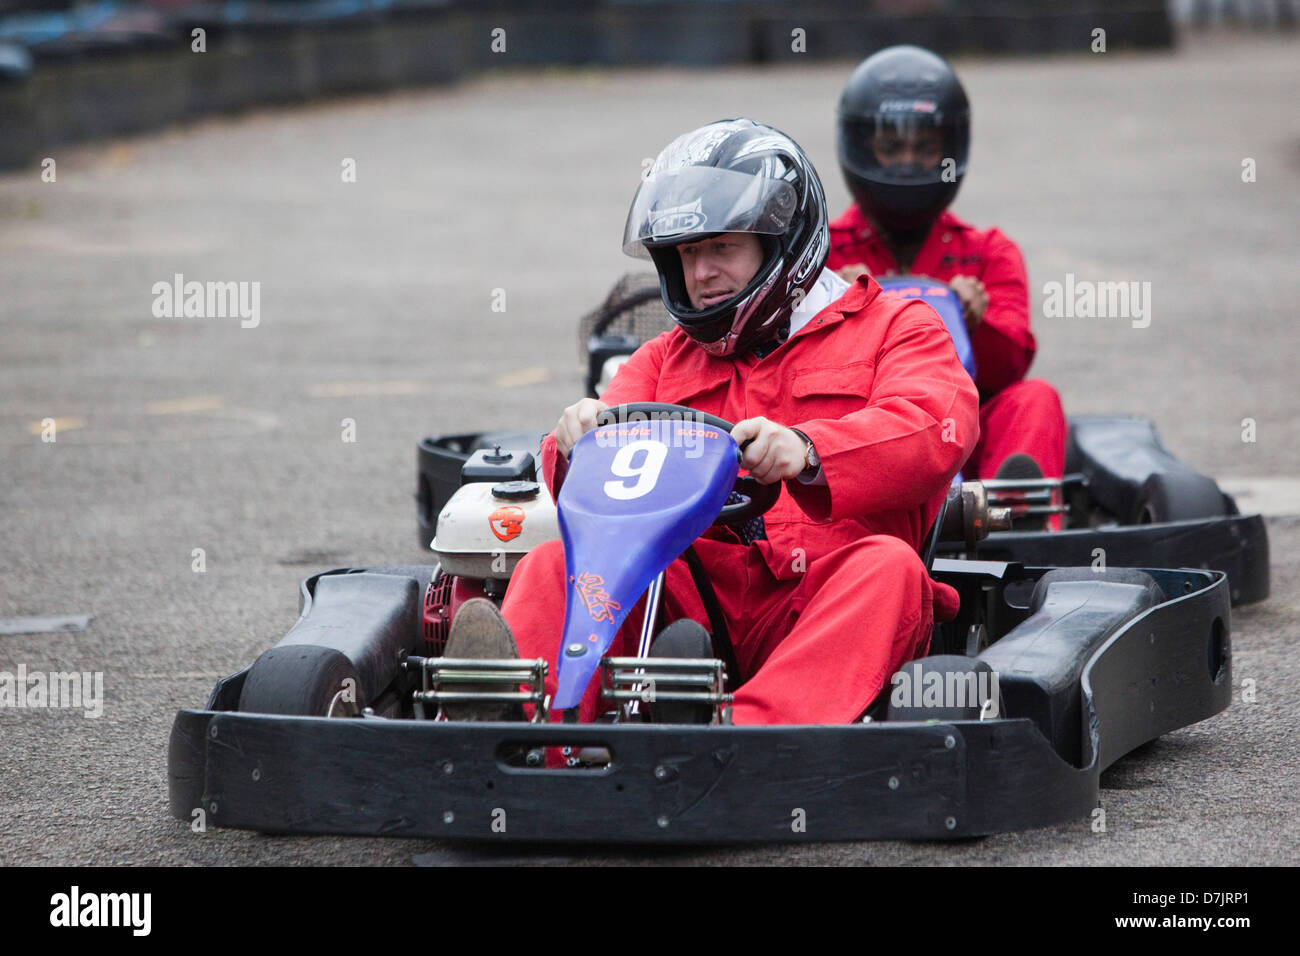 London Mayor Boris Johnson goes go-karting in a boiler suit in support of a charity - Stock Image